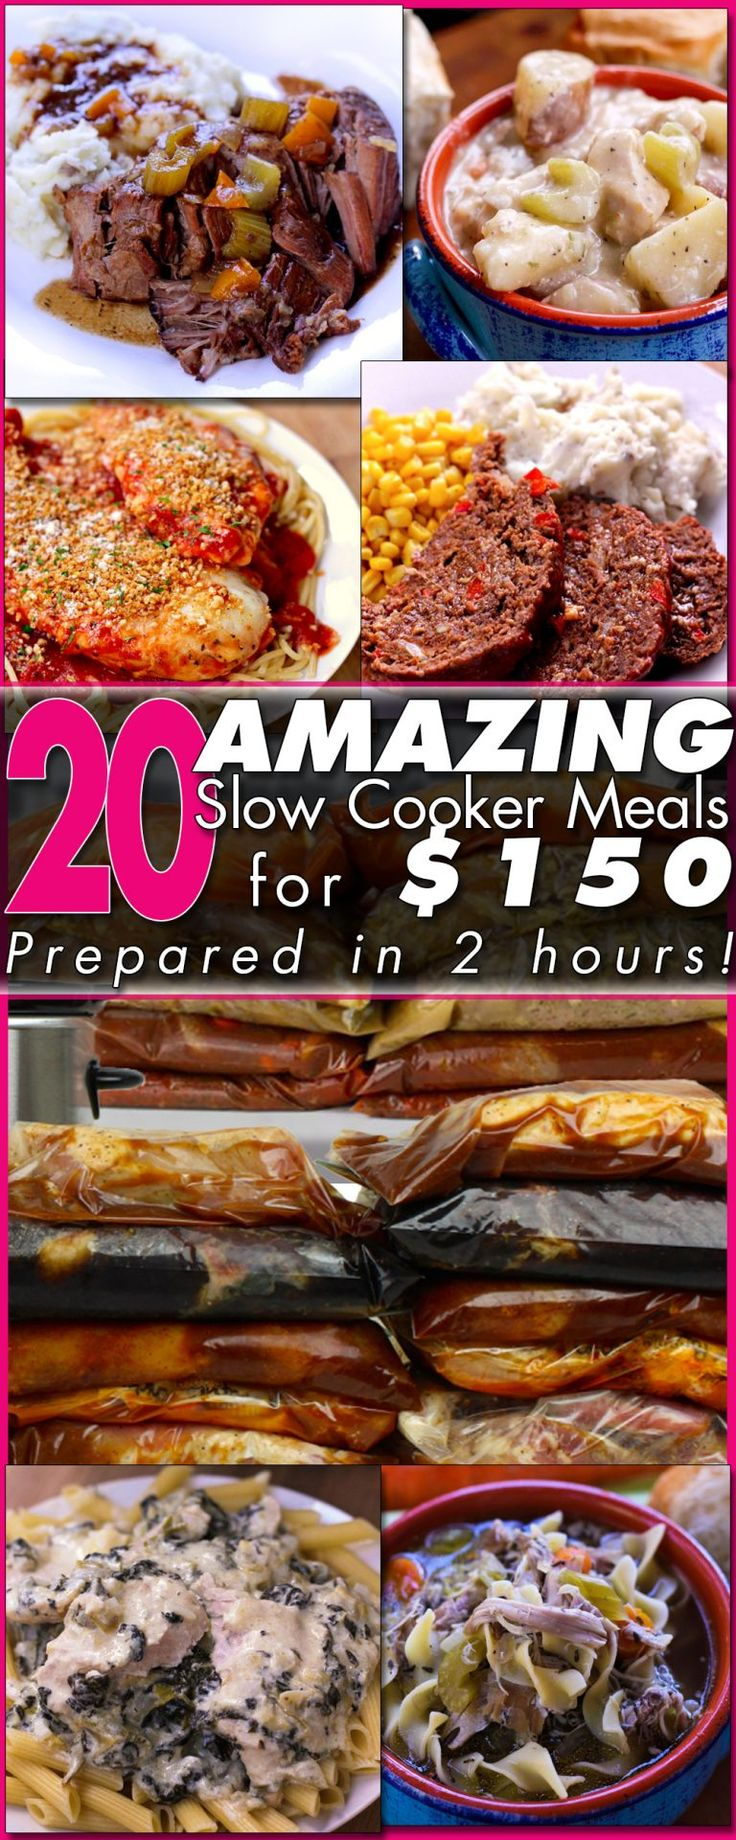 Stop stressing over dinner! For $150 and about 2 hours, you can have 20 DELICIOUS Freezer Meals prepped and ready to go!